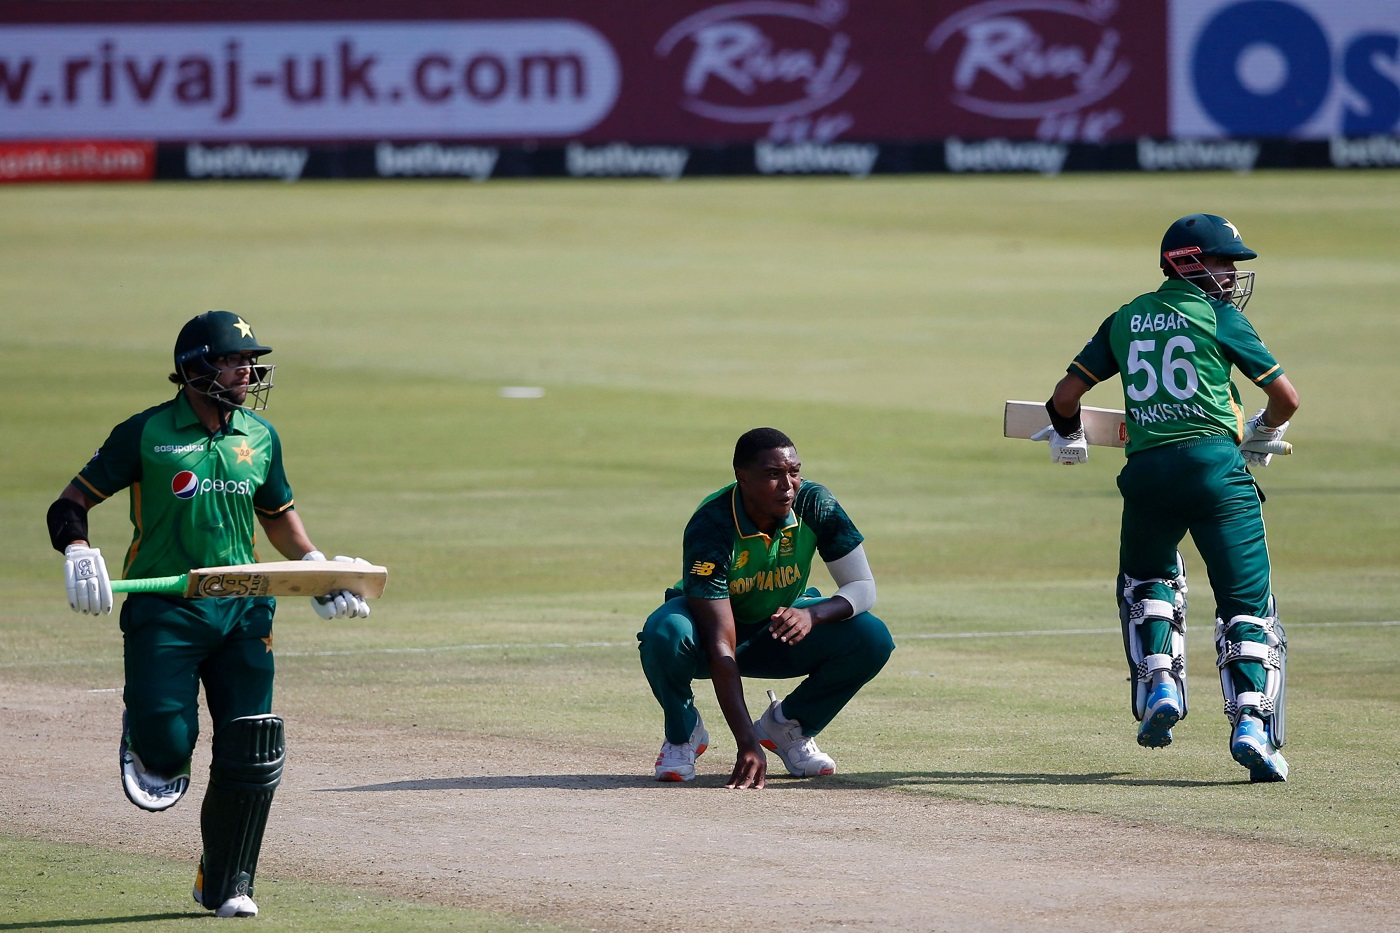 Babar and Imam-ul-Haq added more than 170 runs in the 1st ODI | Getty Images